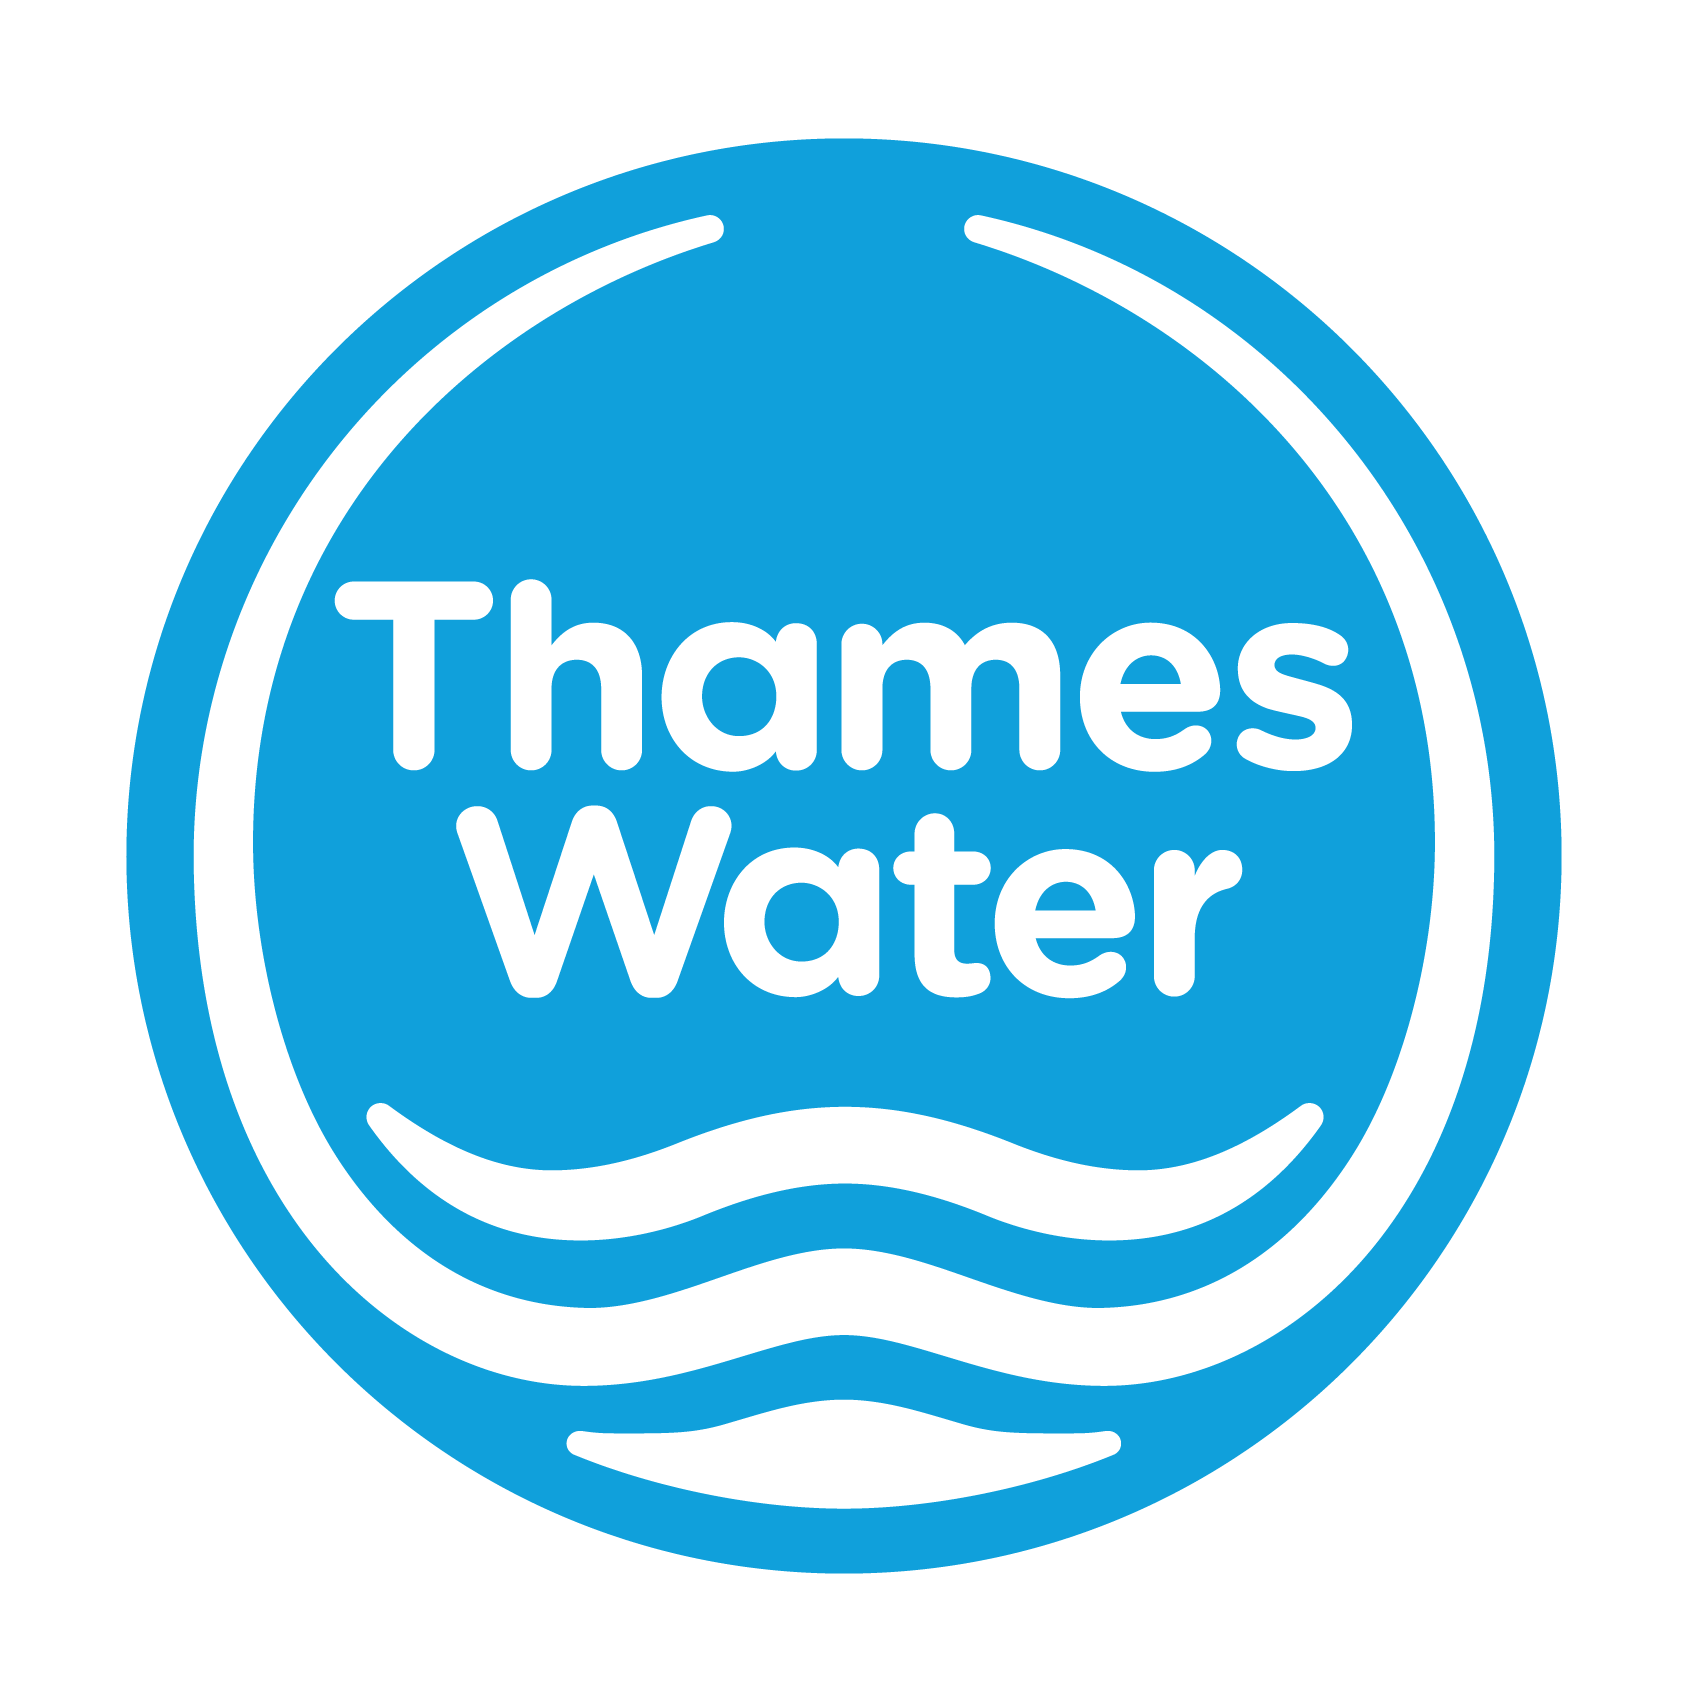 donate-thames-water-logo